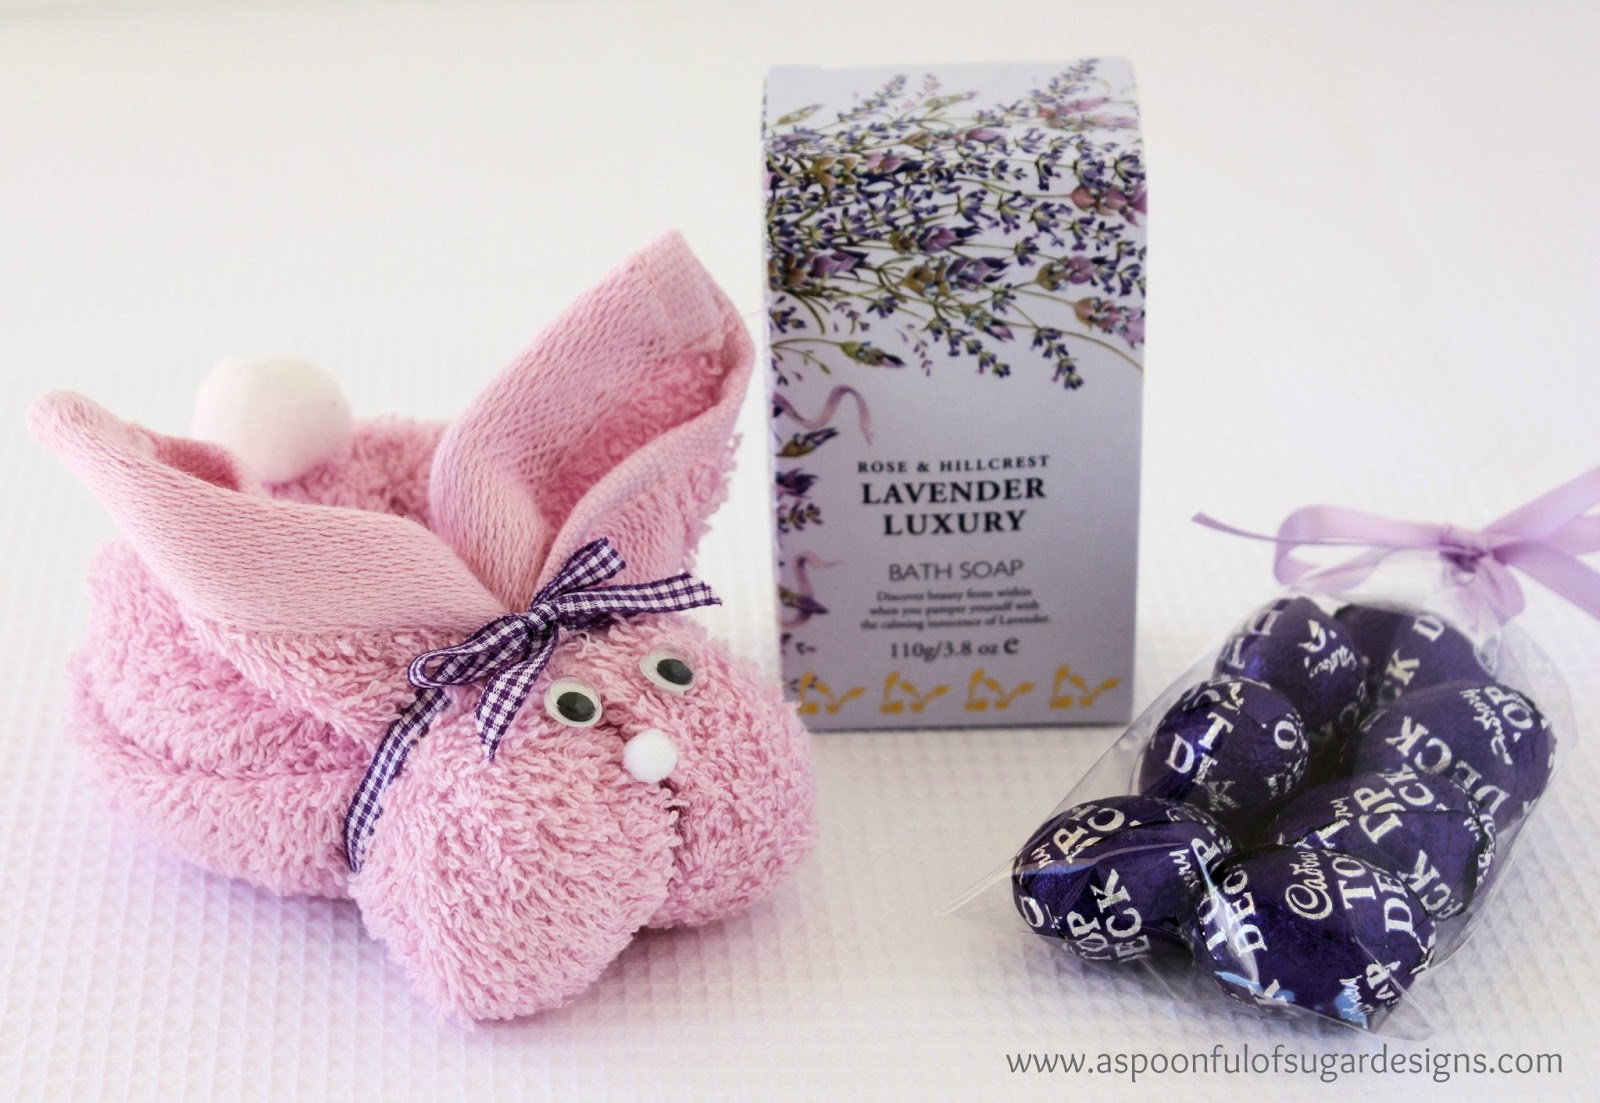 Easter gift ideas a spoonful of sugar if you like practical gifts you can assemble a bunny from a face cloth teamed with soap bath products or bath toys it makes a fun easter gift for young negle Image collections